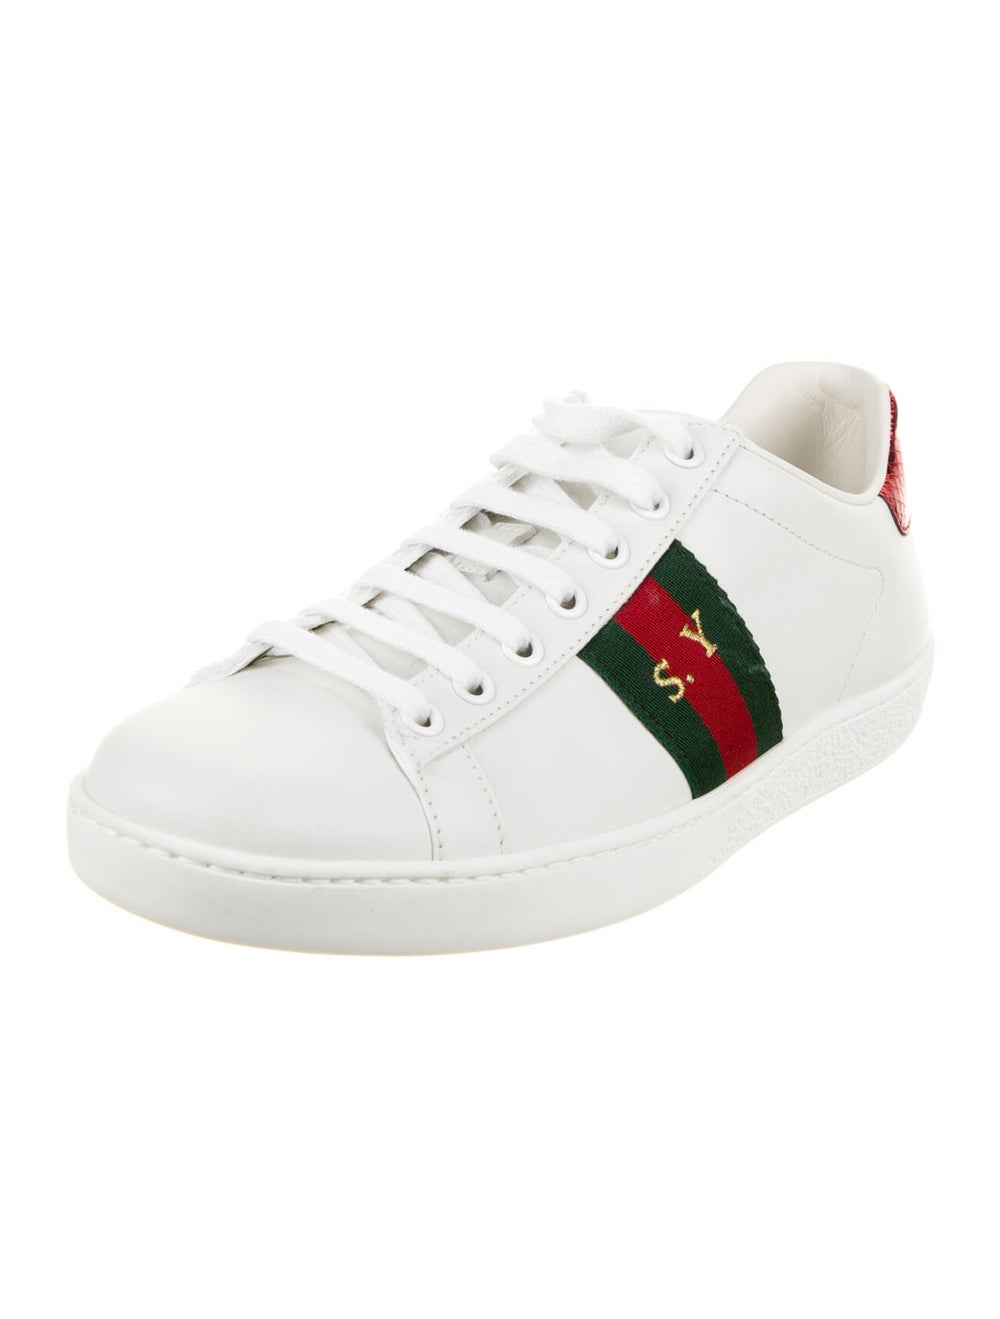 Gucci Web Accent Leather Sneakers White - image 2